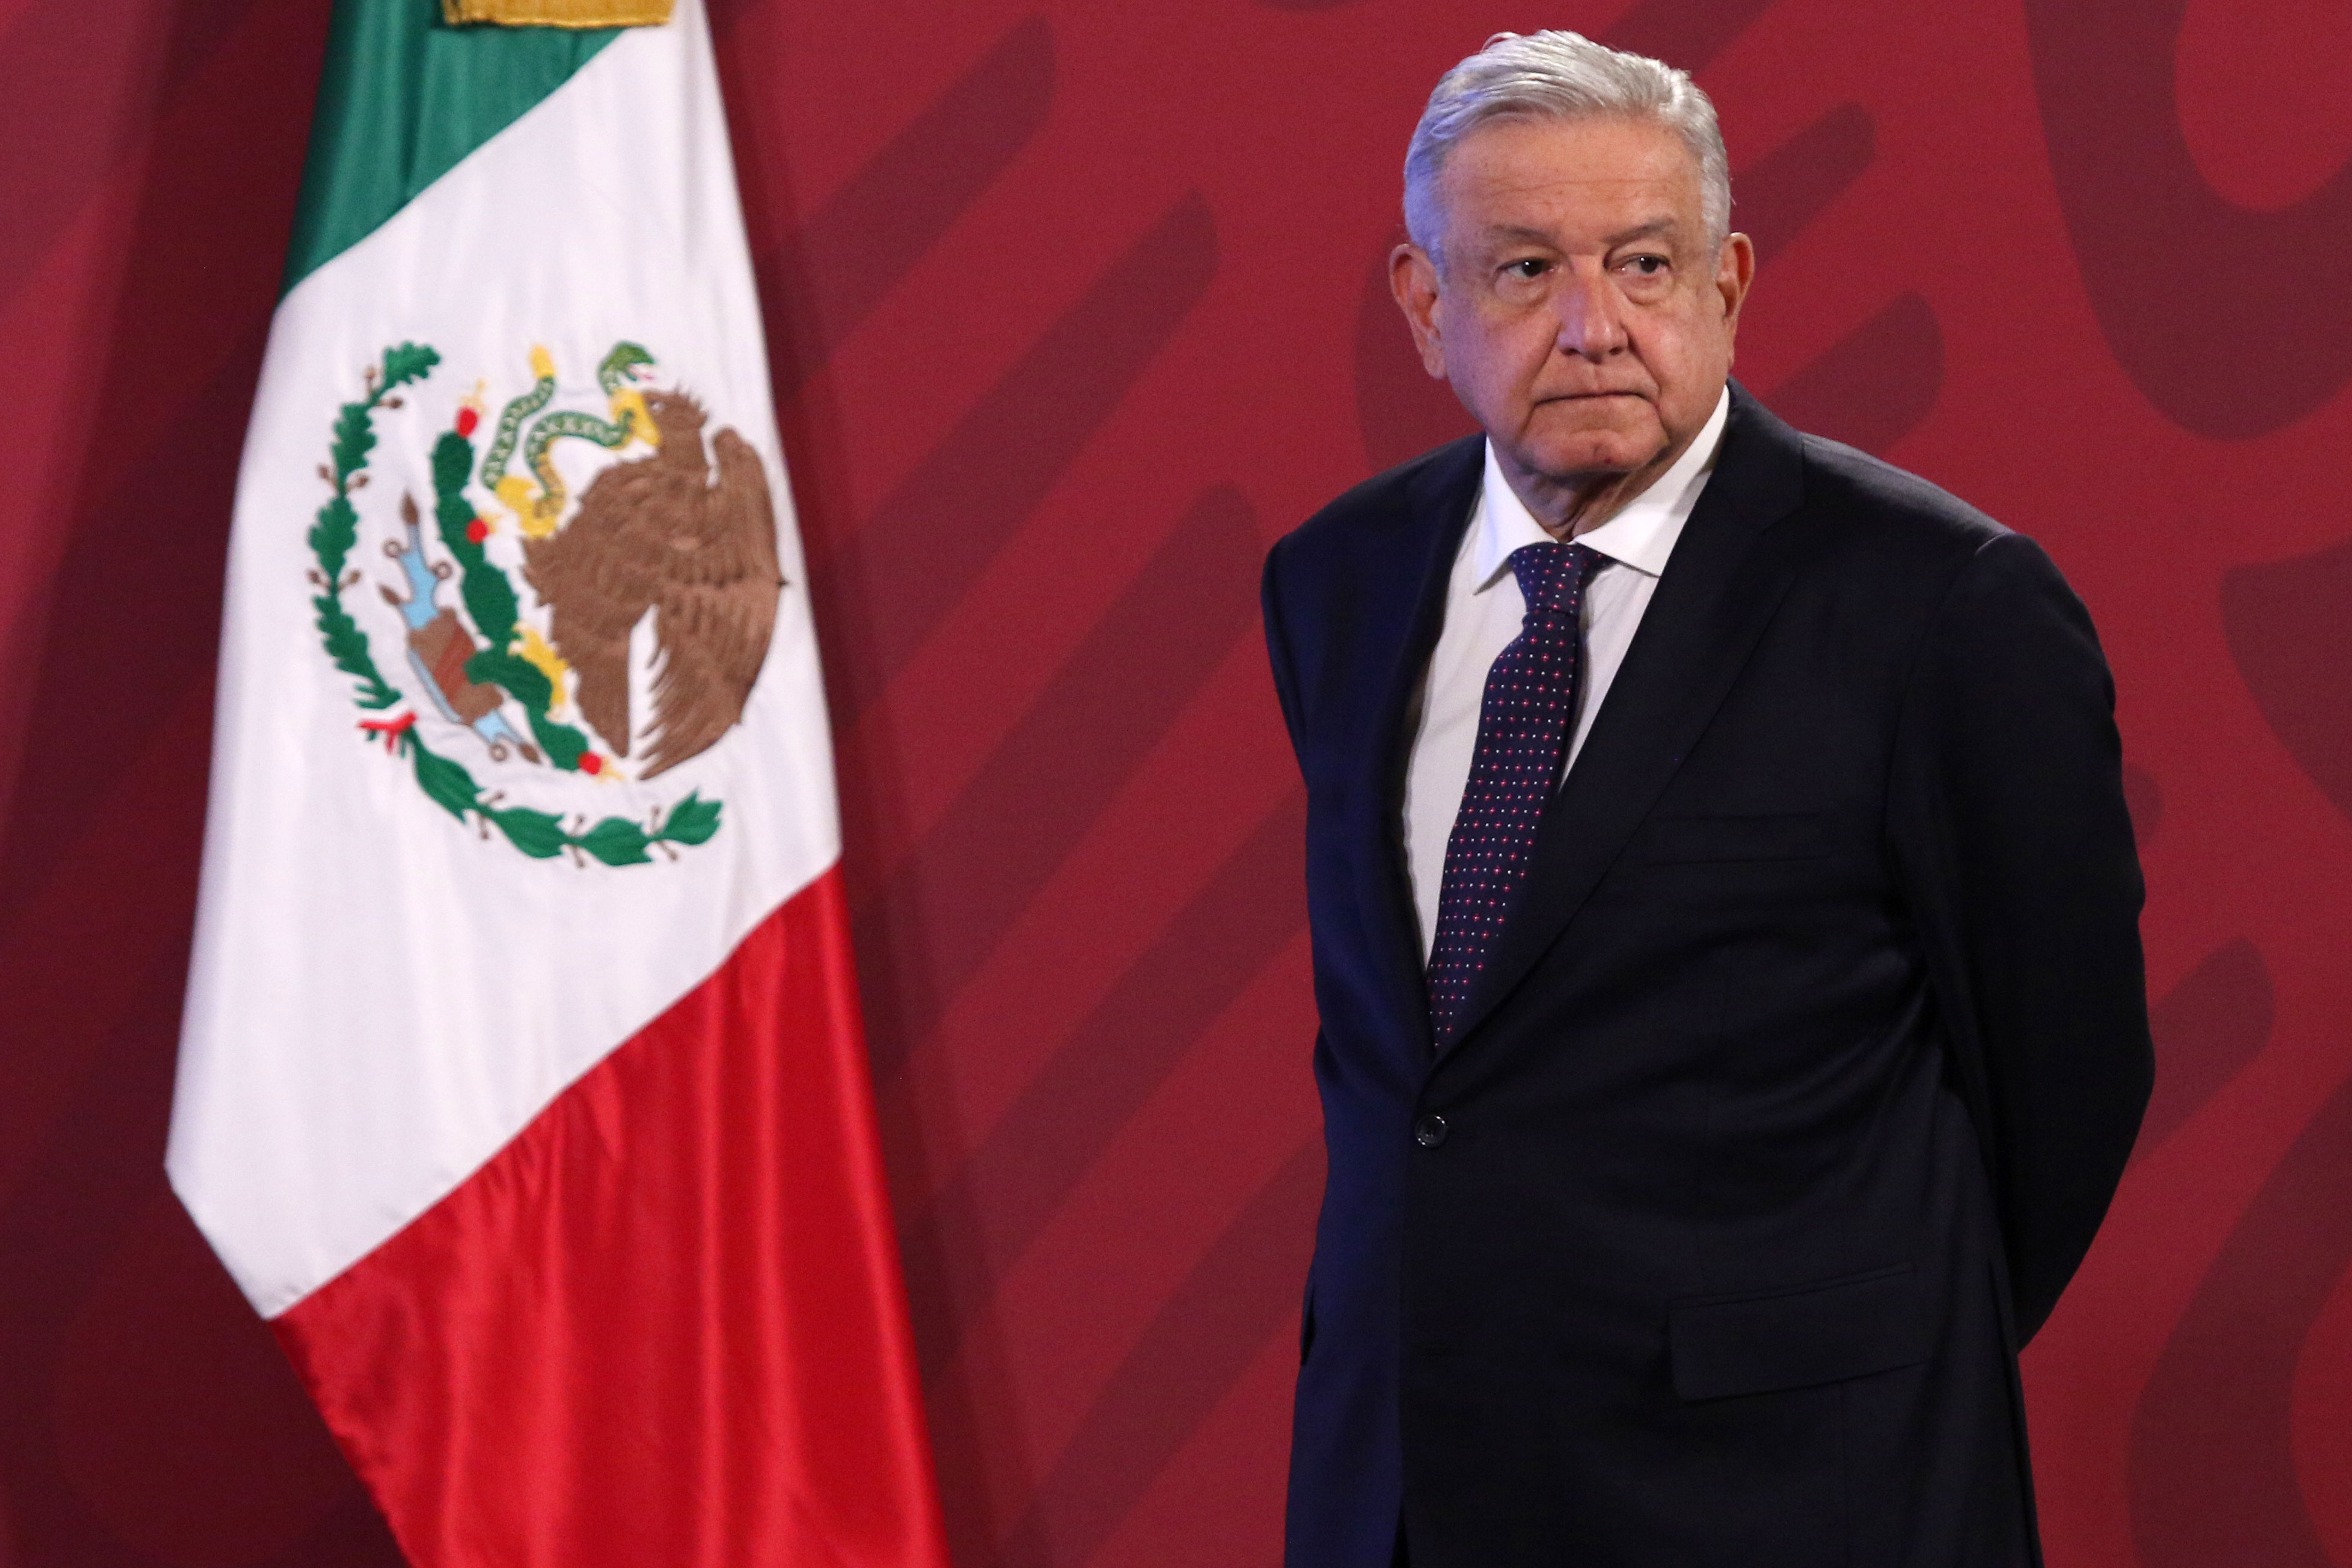 Mexican President Andrés Manuel López Obrador holds a news conference in Mexico City on November 5, 2020.